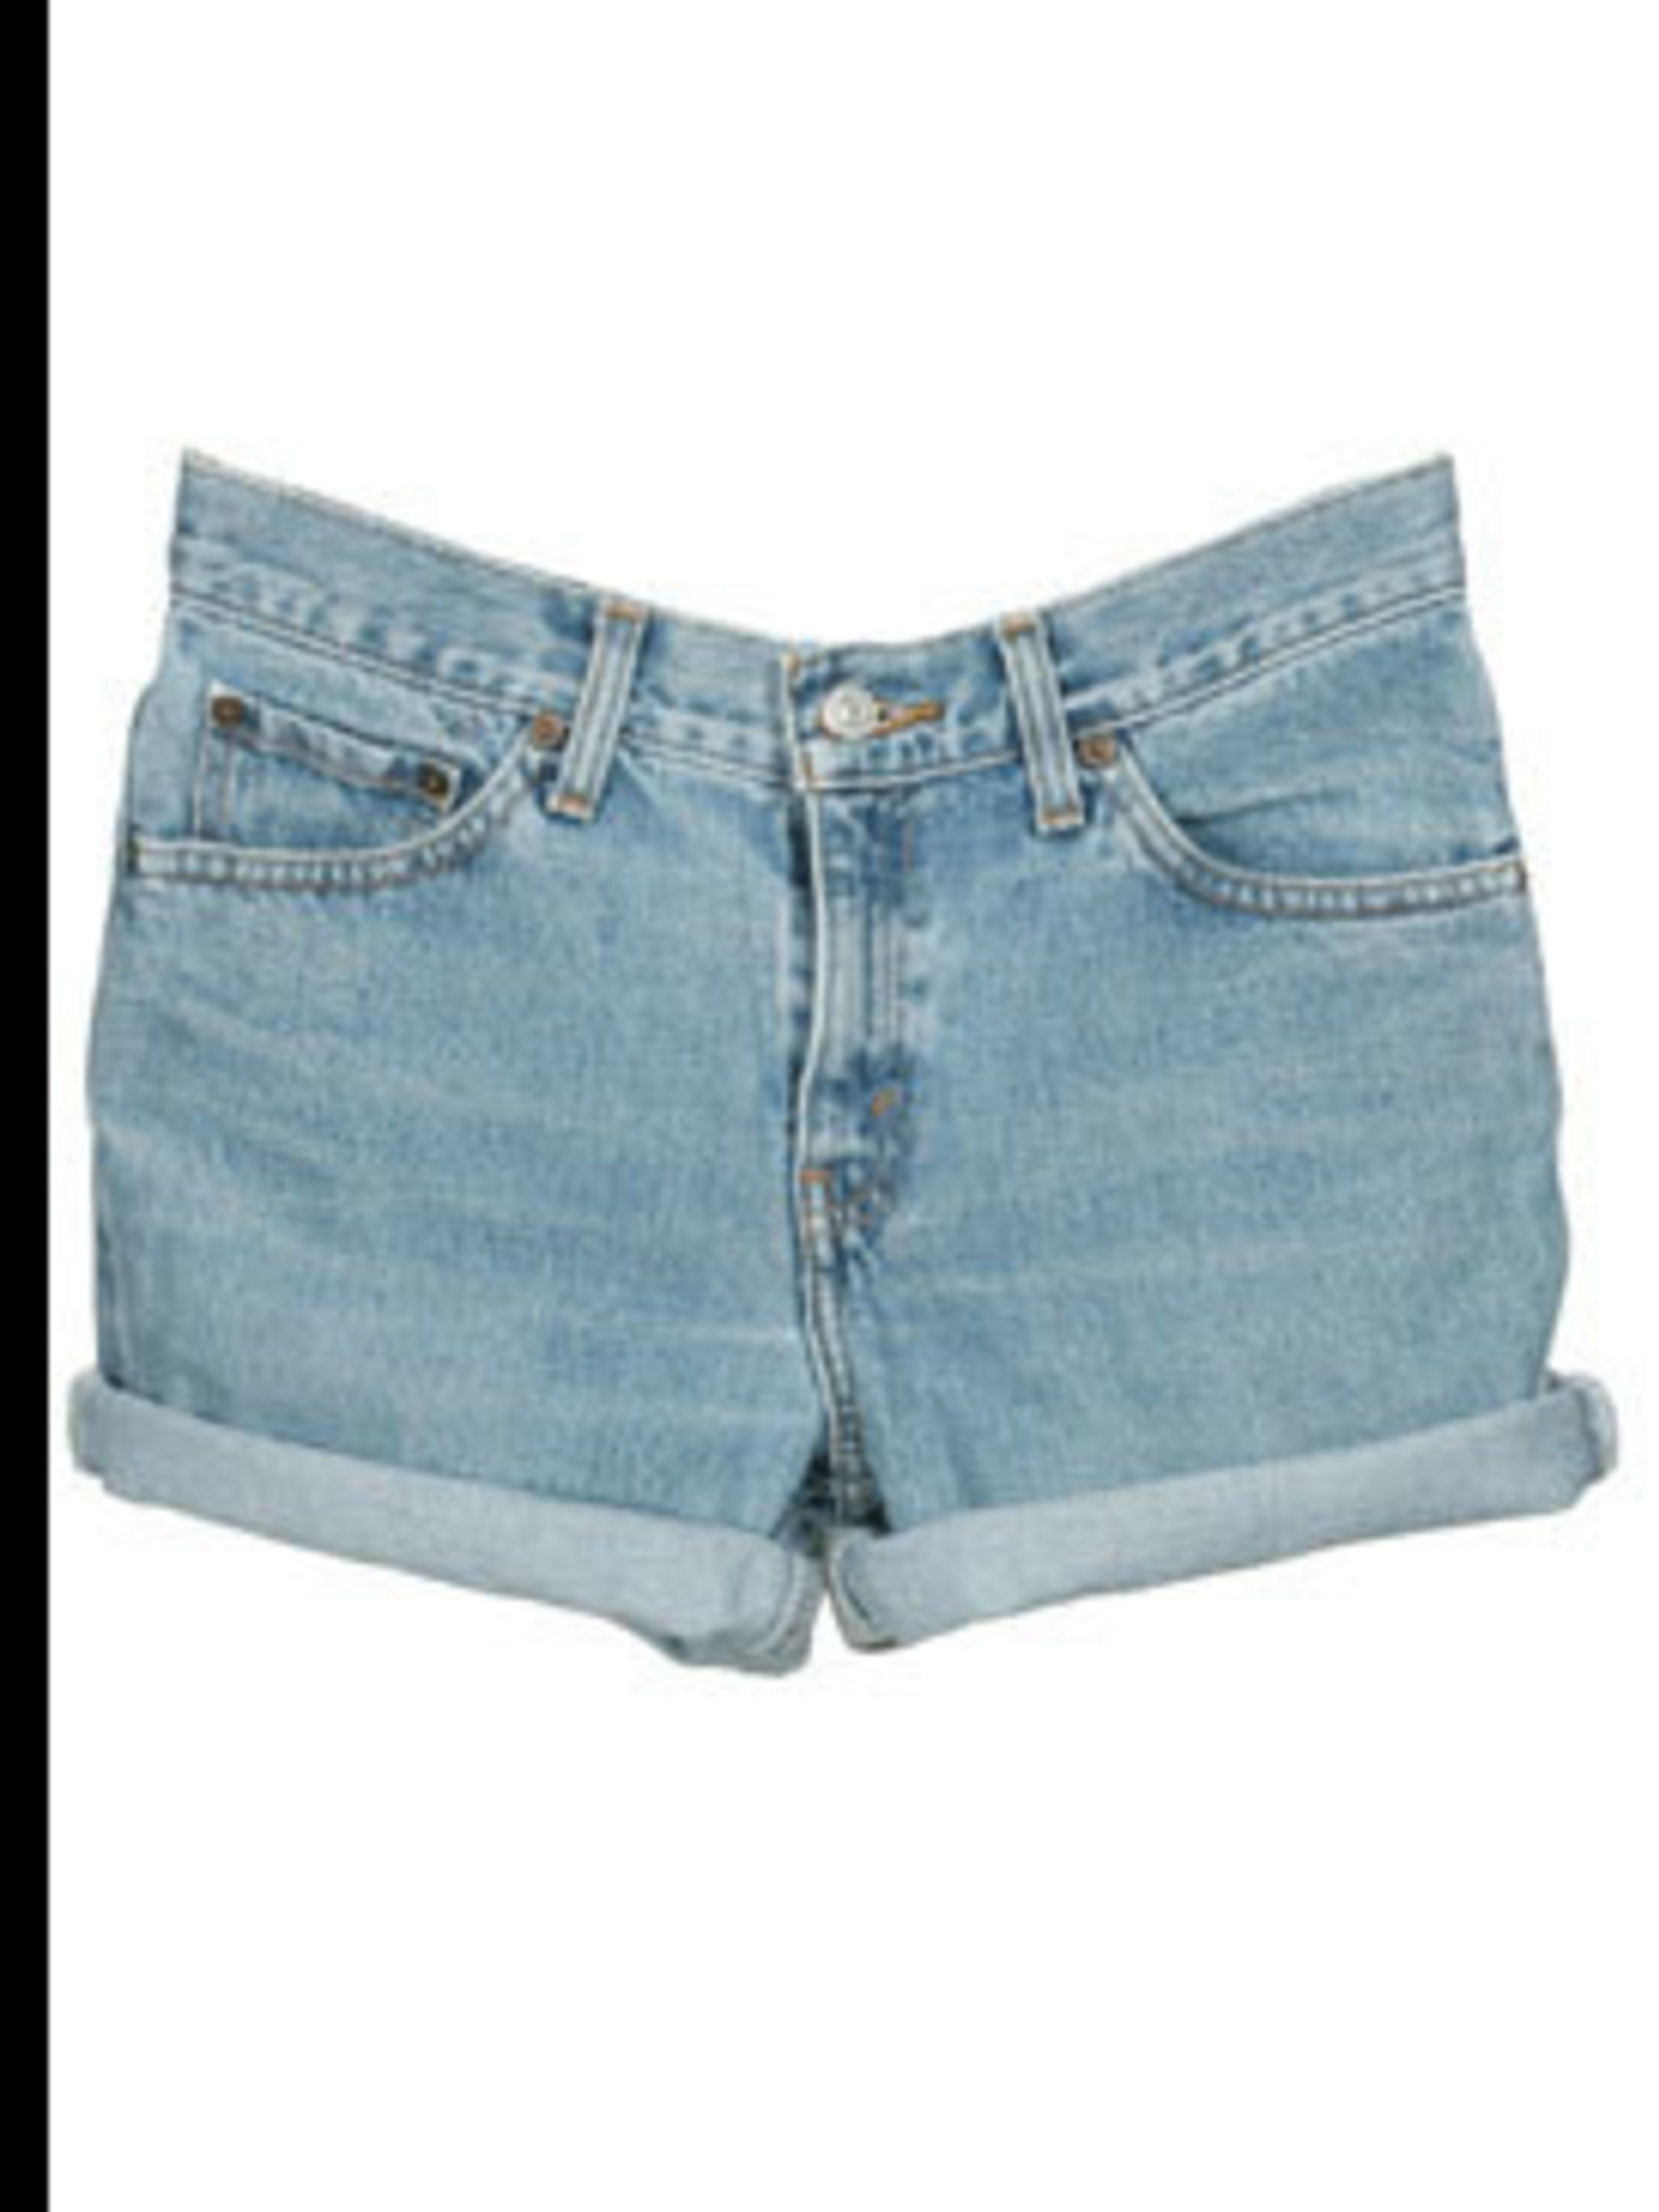 "<p>Vintage denim shorts, £10, by Levi's at <a href=""http://www.rokit.co.uk/product.php?product_id=WC250181"">Rokit</a></p>"